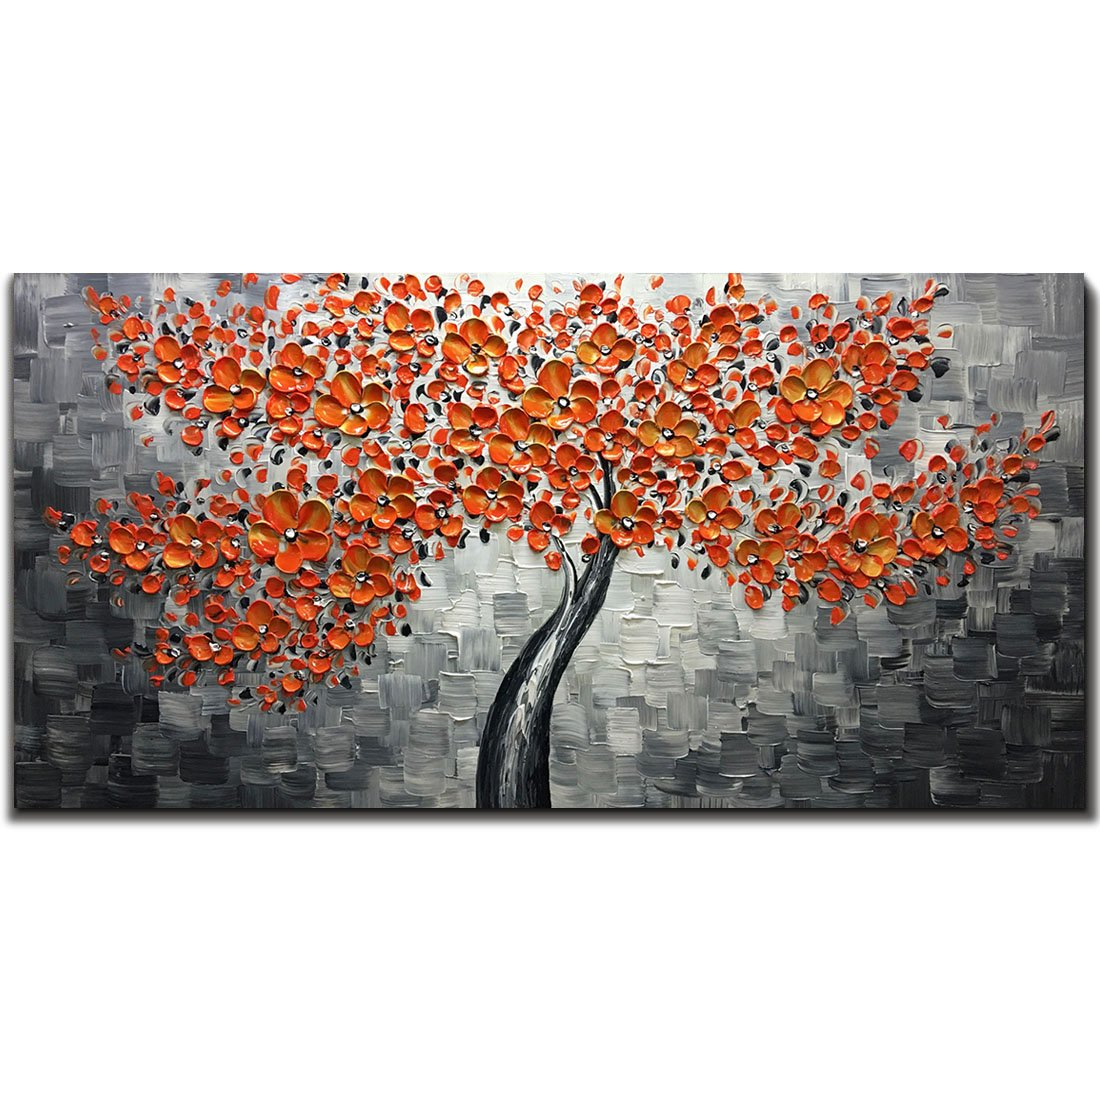 Metuu Modern Canvas Paintings, Texture Palette Knife Red Flowers Paintings Modern Home Decor Wall Art Painting Colorful 3D Flowers Tree Wood Inside Framed Ready to hang 24x48inch by Metuu